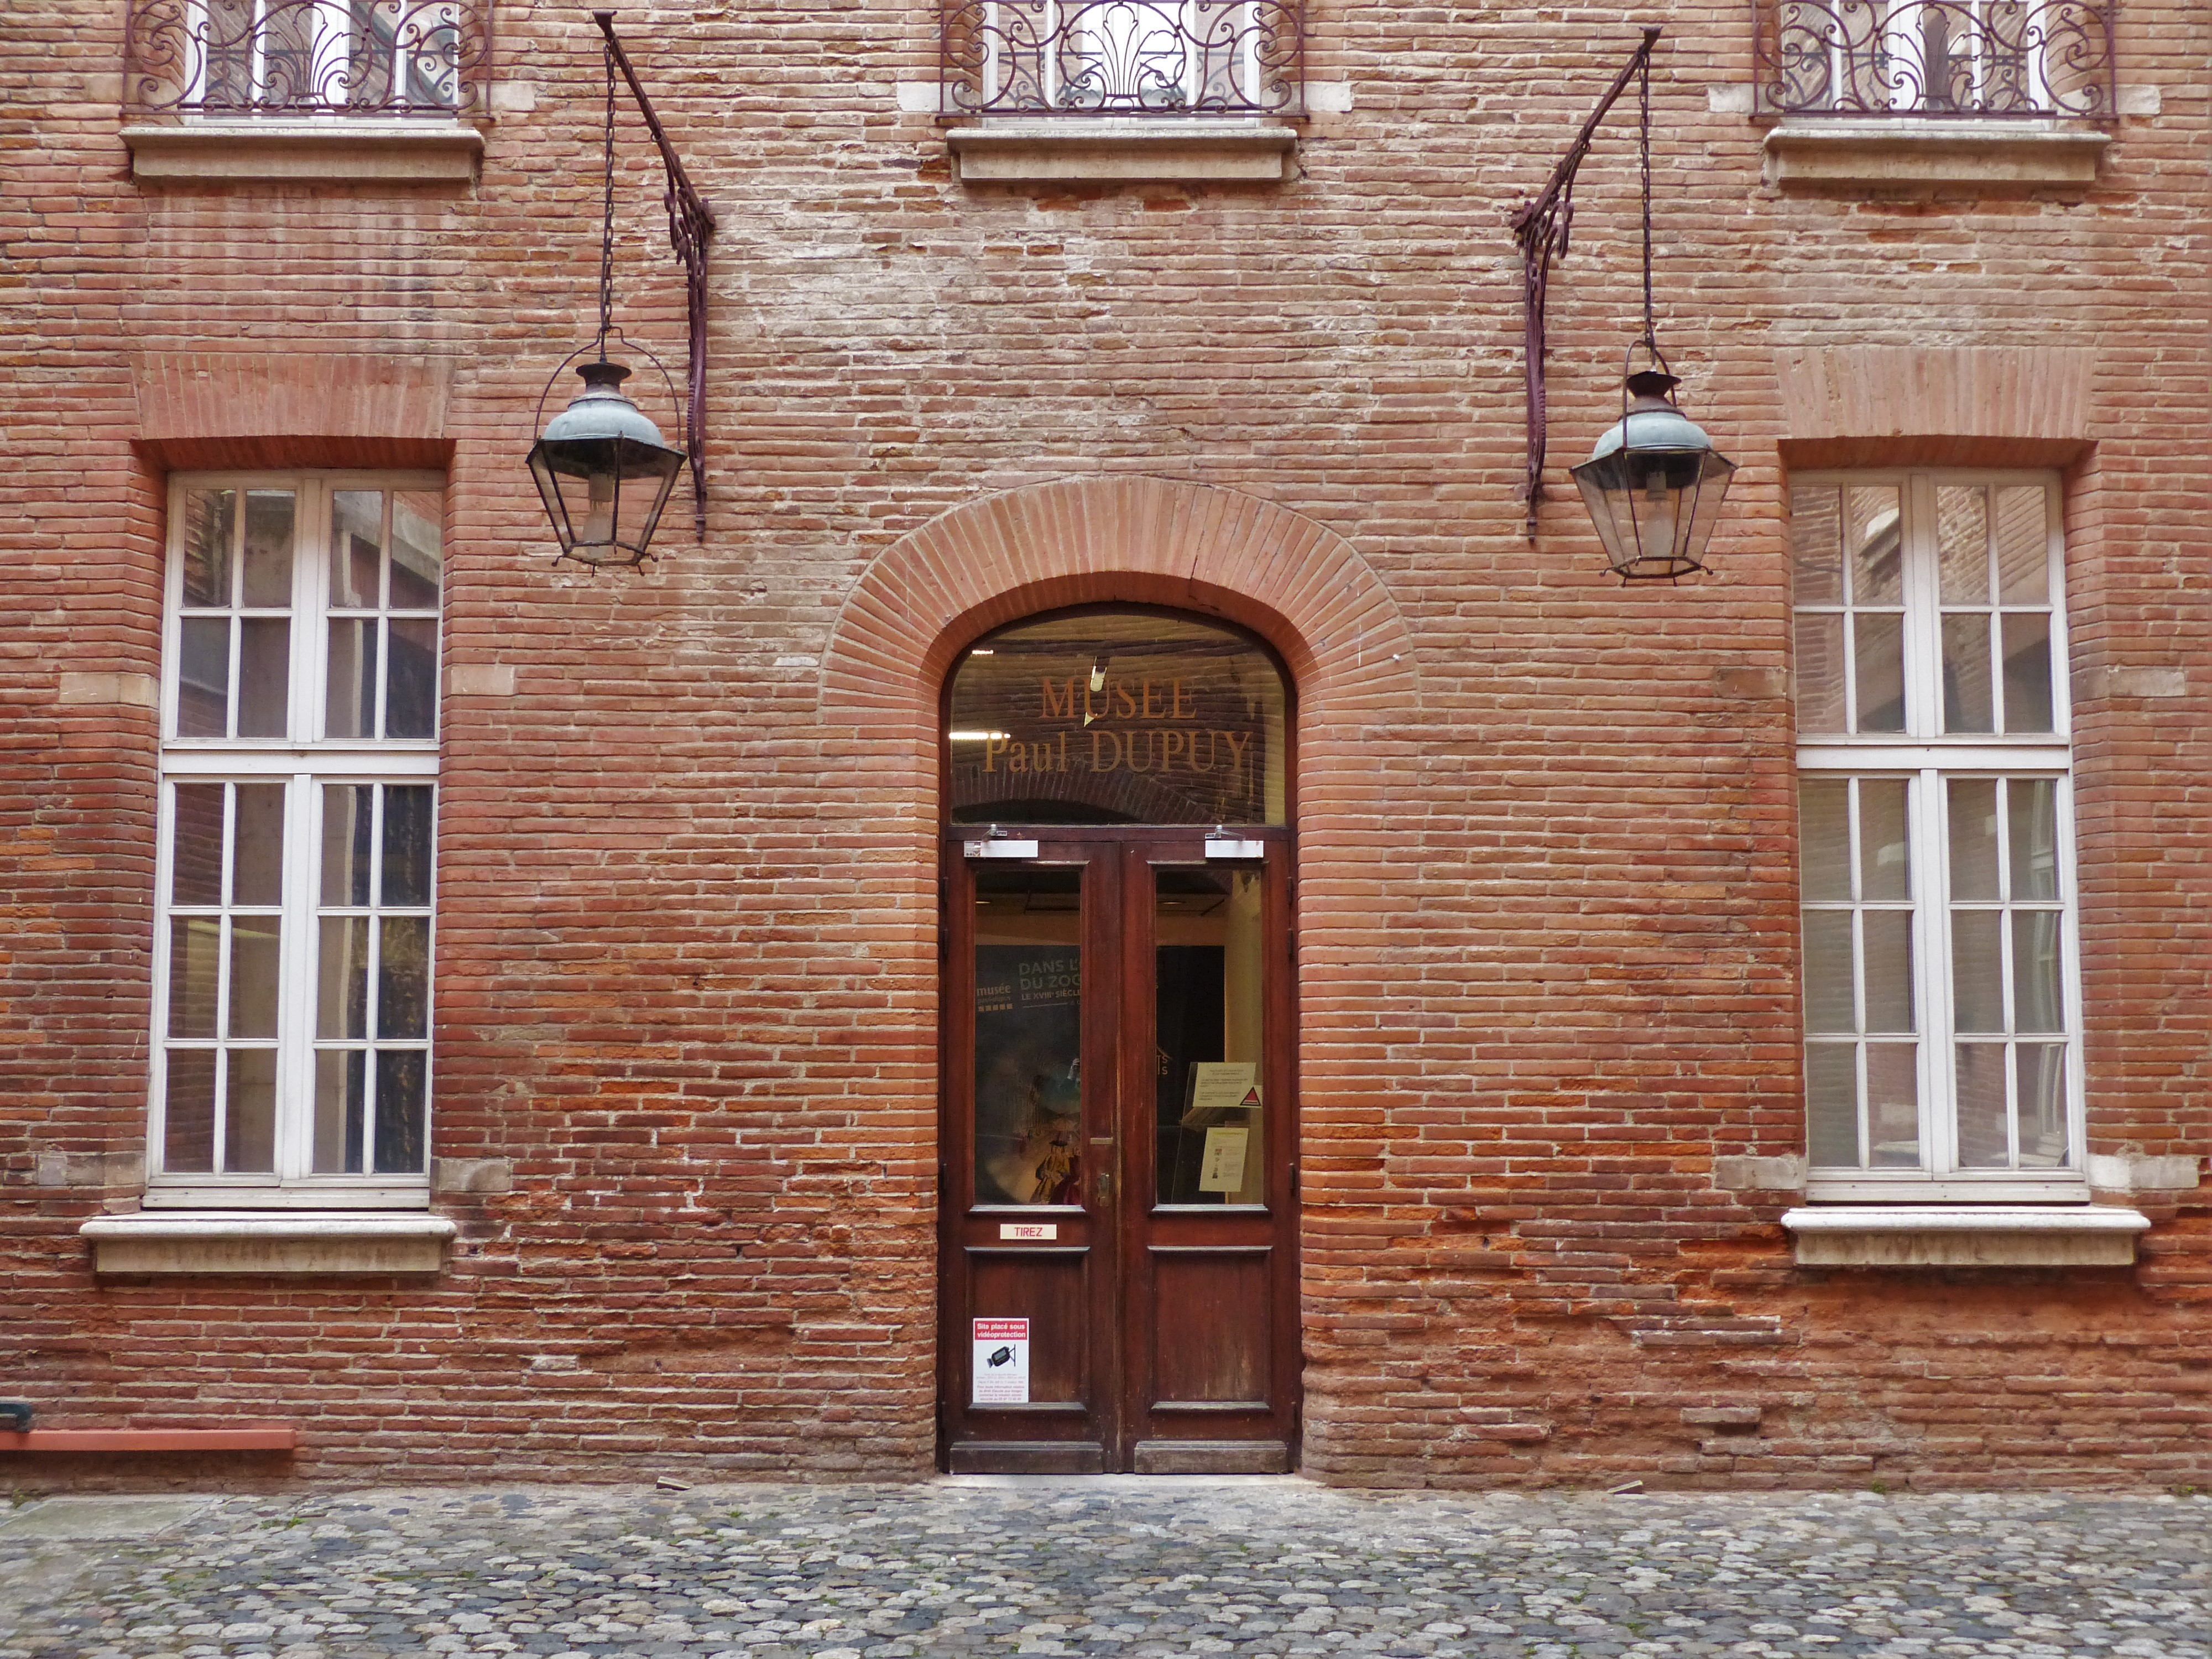 Toulouse - Musee Paul Dupuy